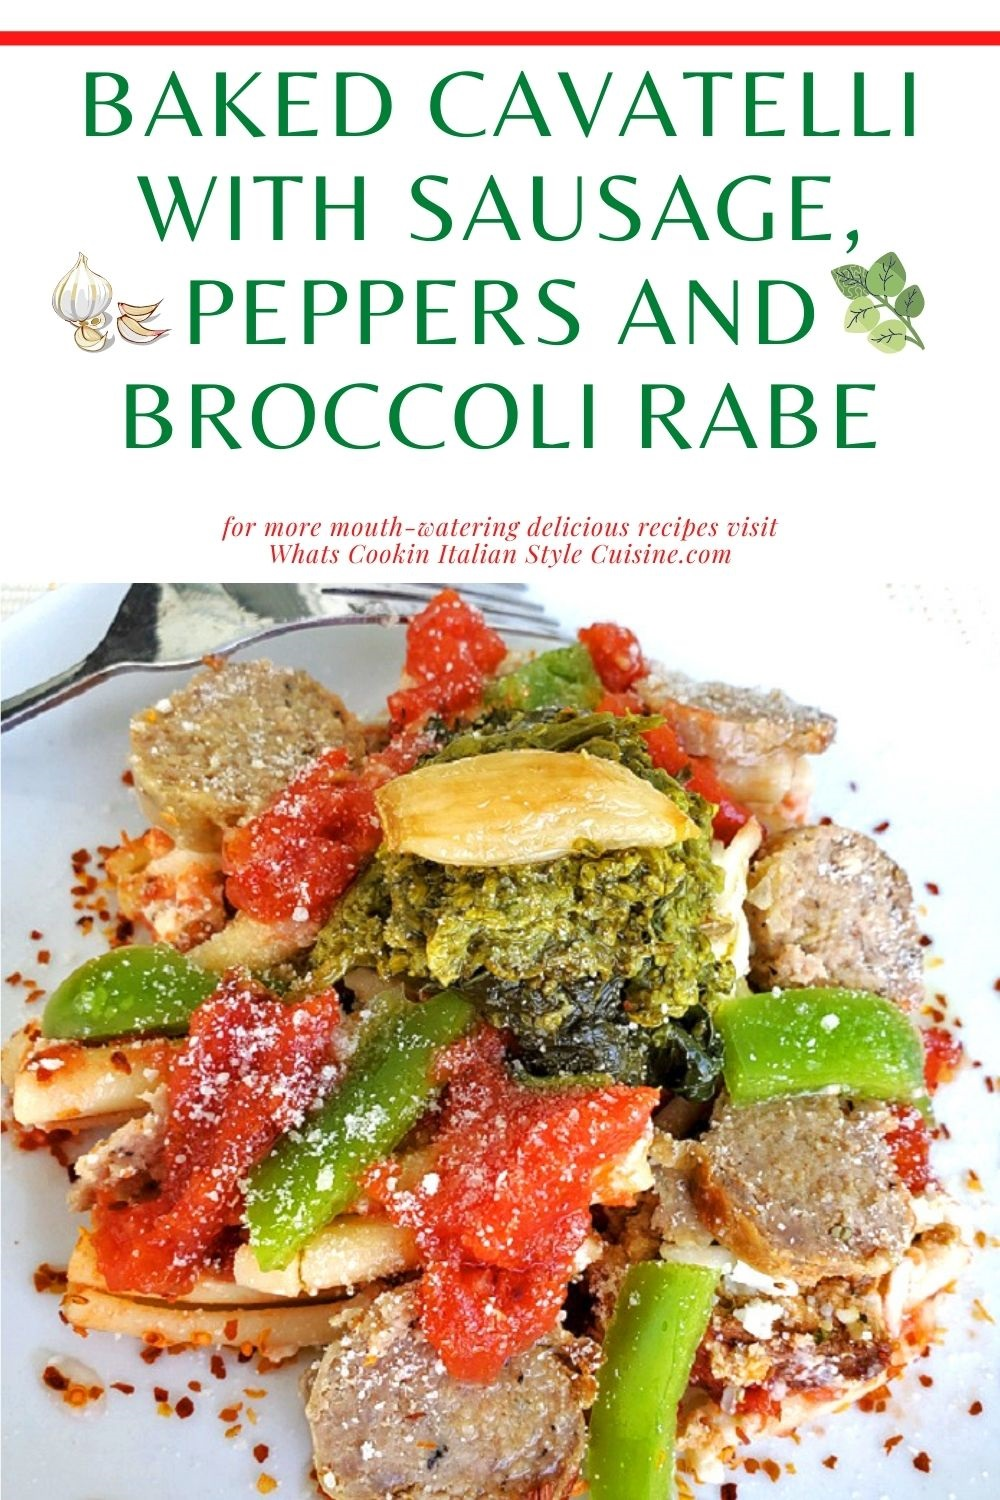 this is a pin for later on how to make baked cavatelli casserole with sausage, pepper and broccoli rabe